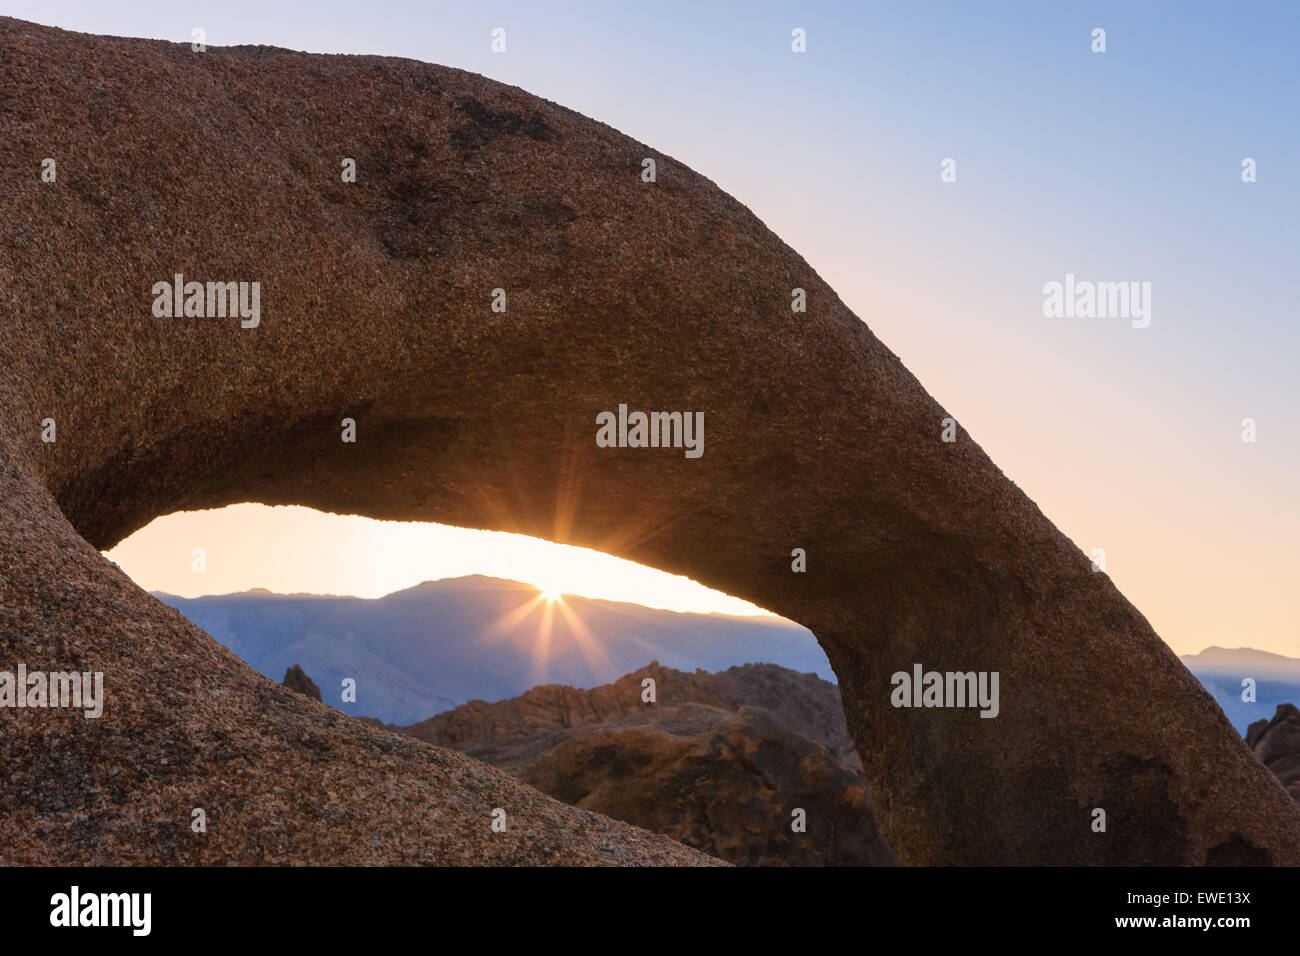 Sunrise at Mobius Arch in the Alabama Hills with the view towards the Sierra Nevada, California, USA. - Stock Image